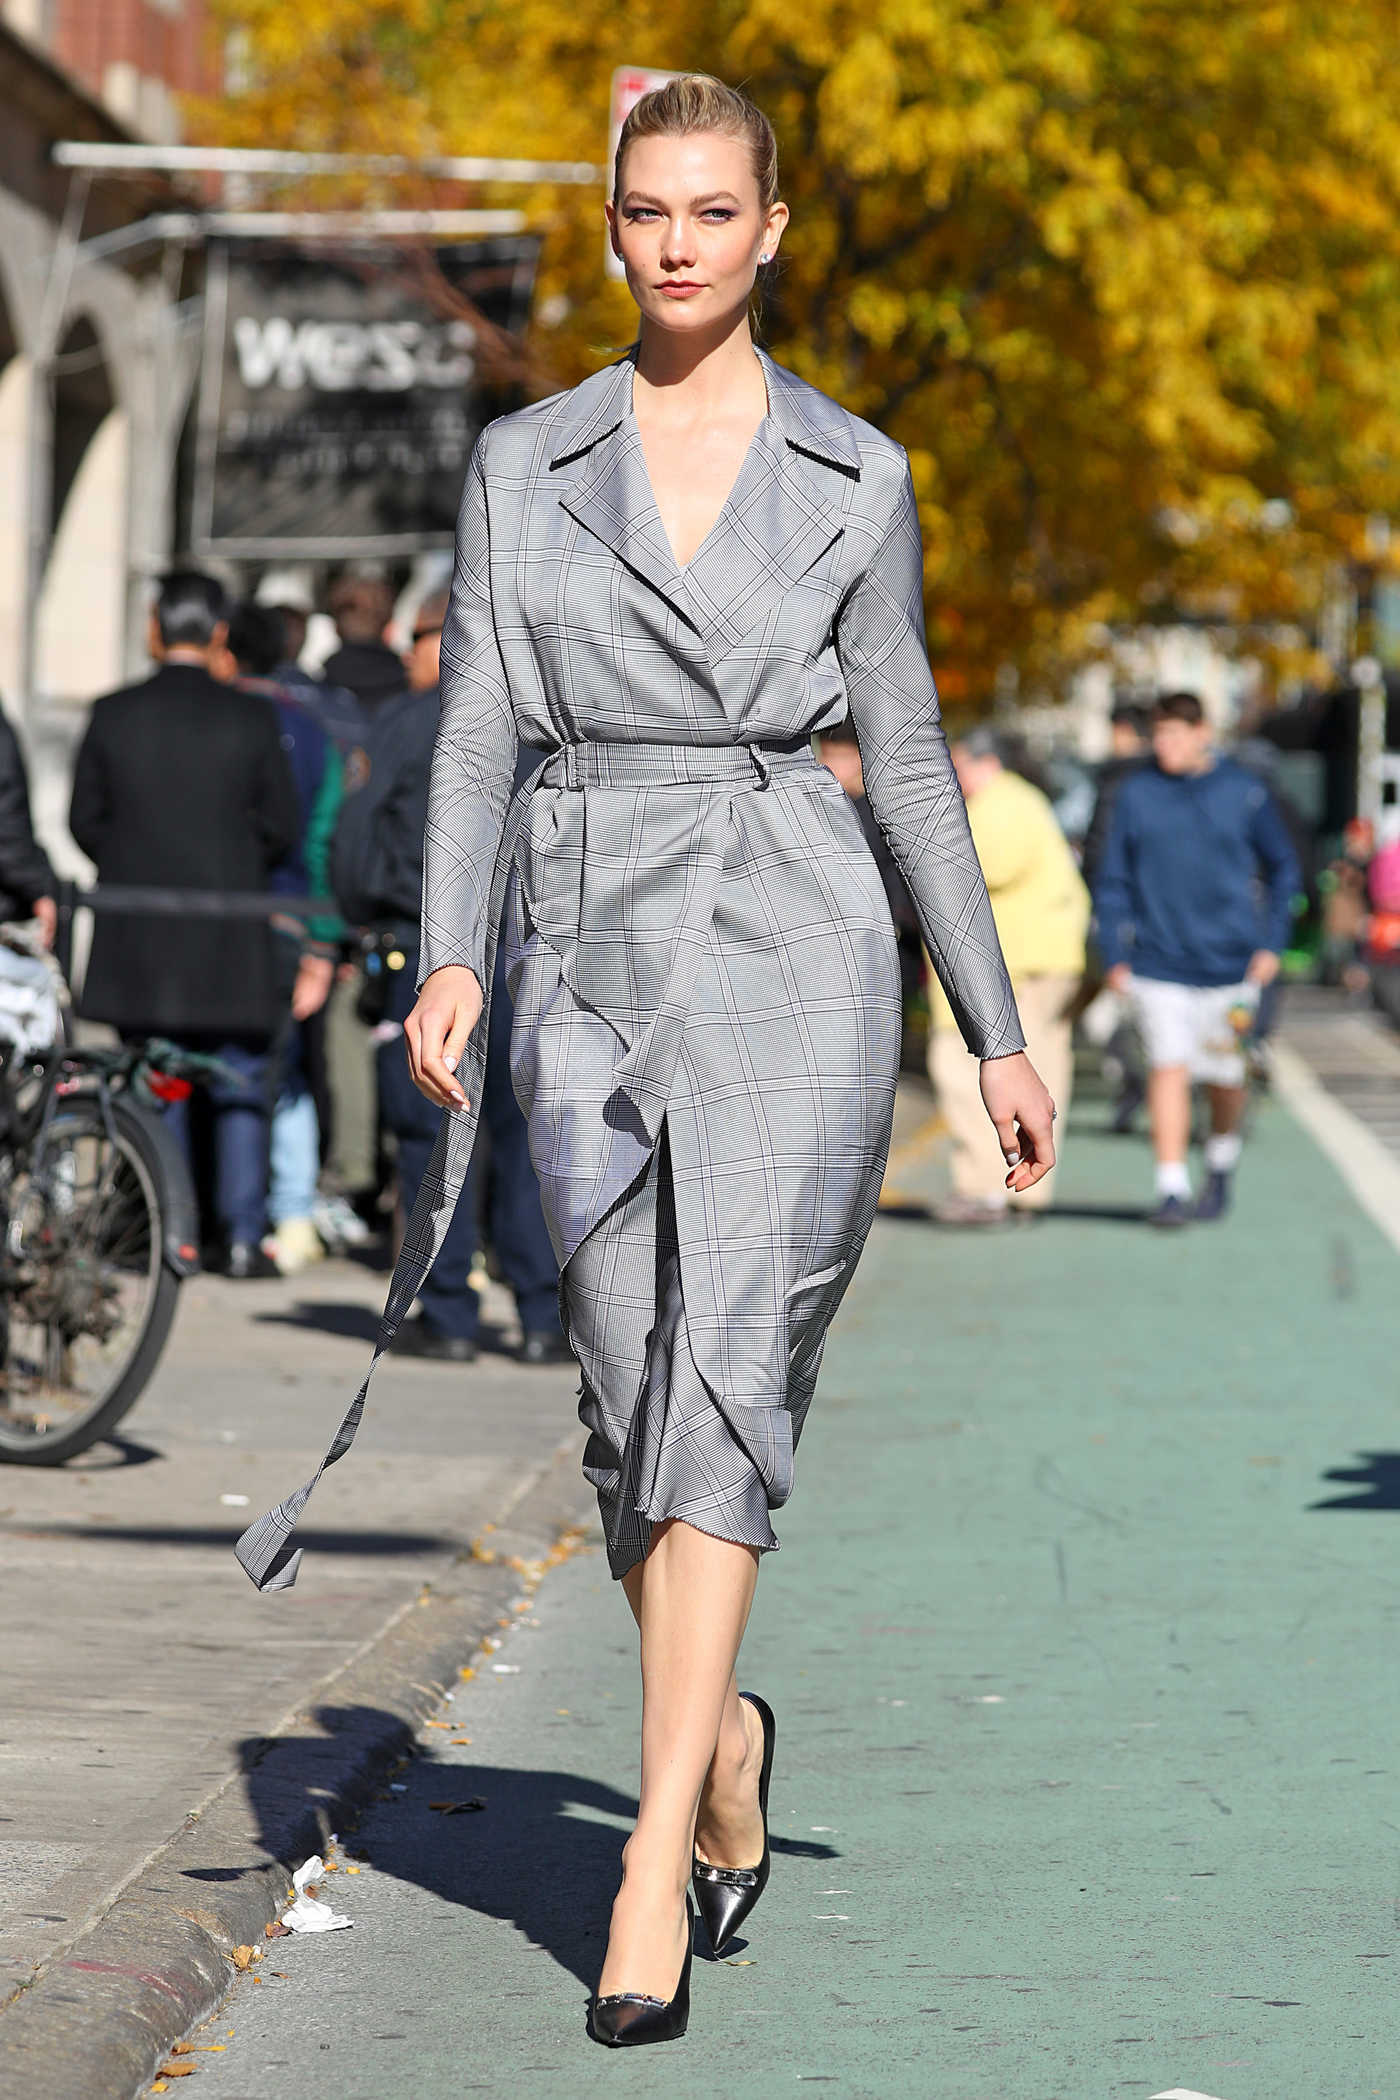 Karlie Kloss in a Gray Trench Coat Was Seen Out in NYC 11/08/2018